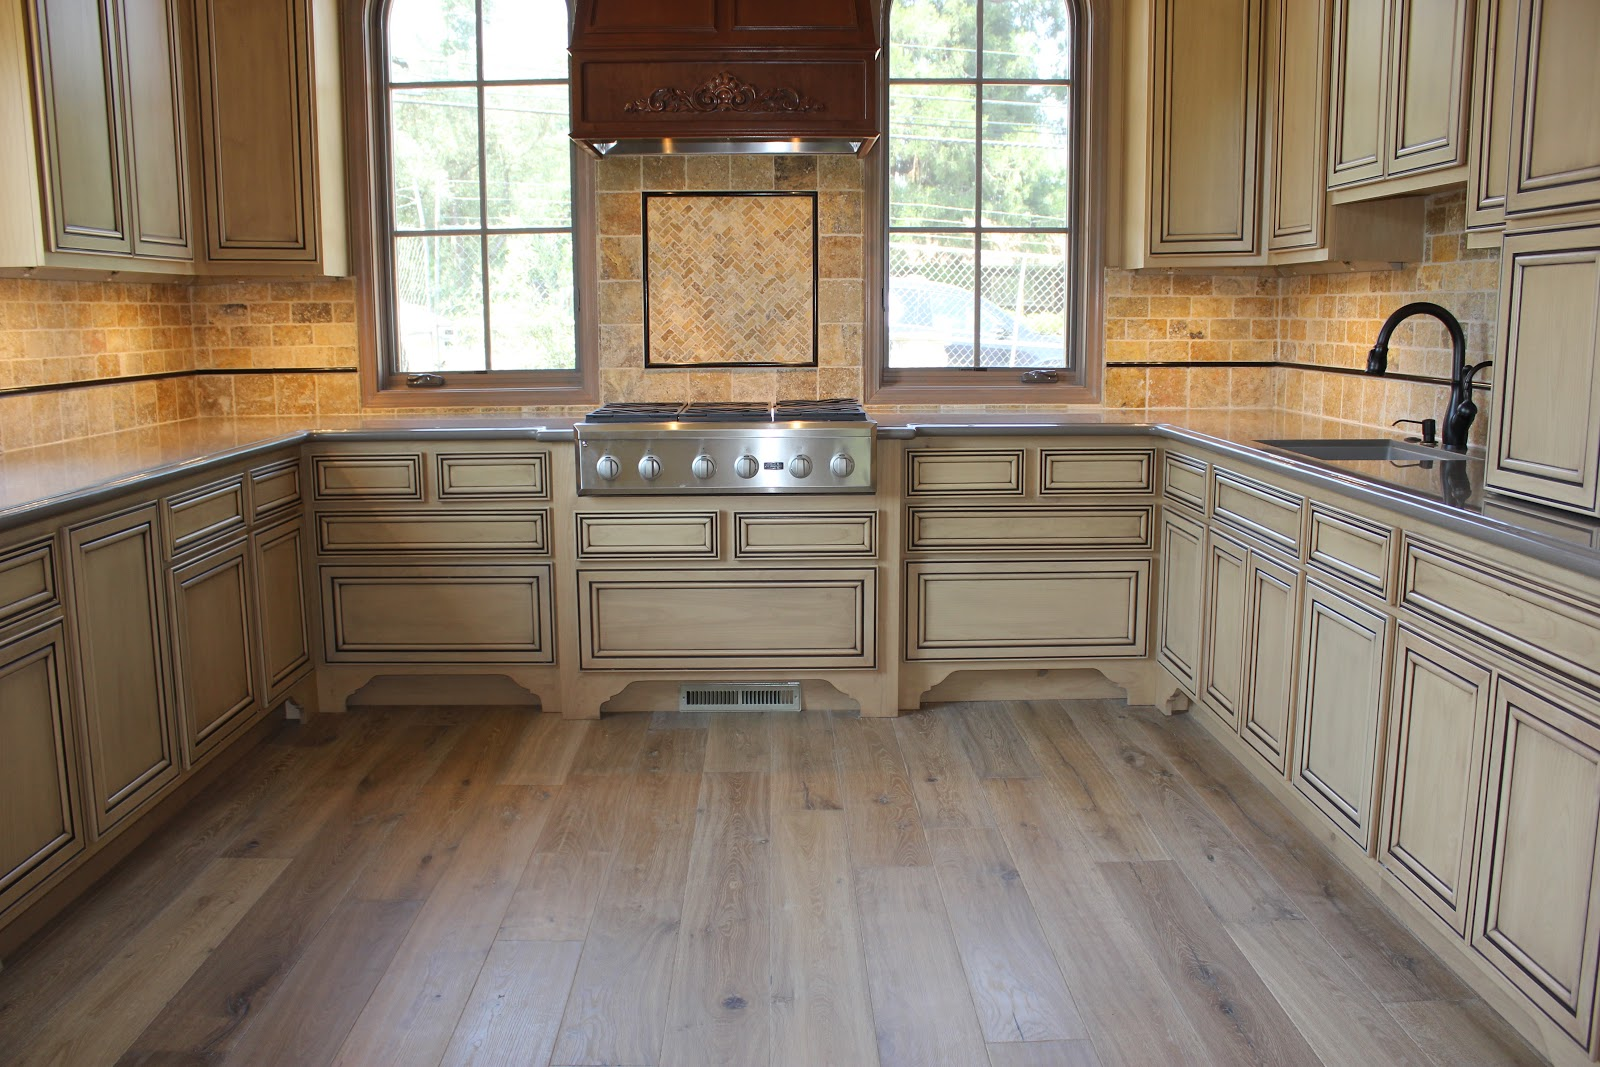 Simas floor and design company hardwood flooring by royal oak for Kitchen flooring sale